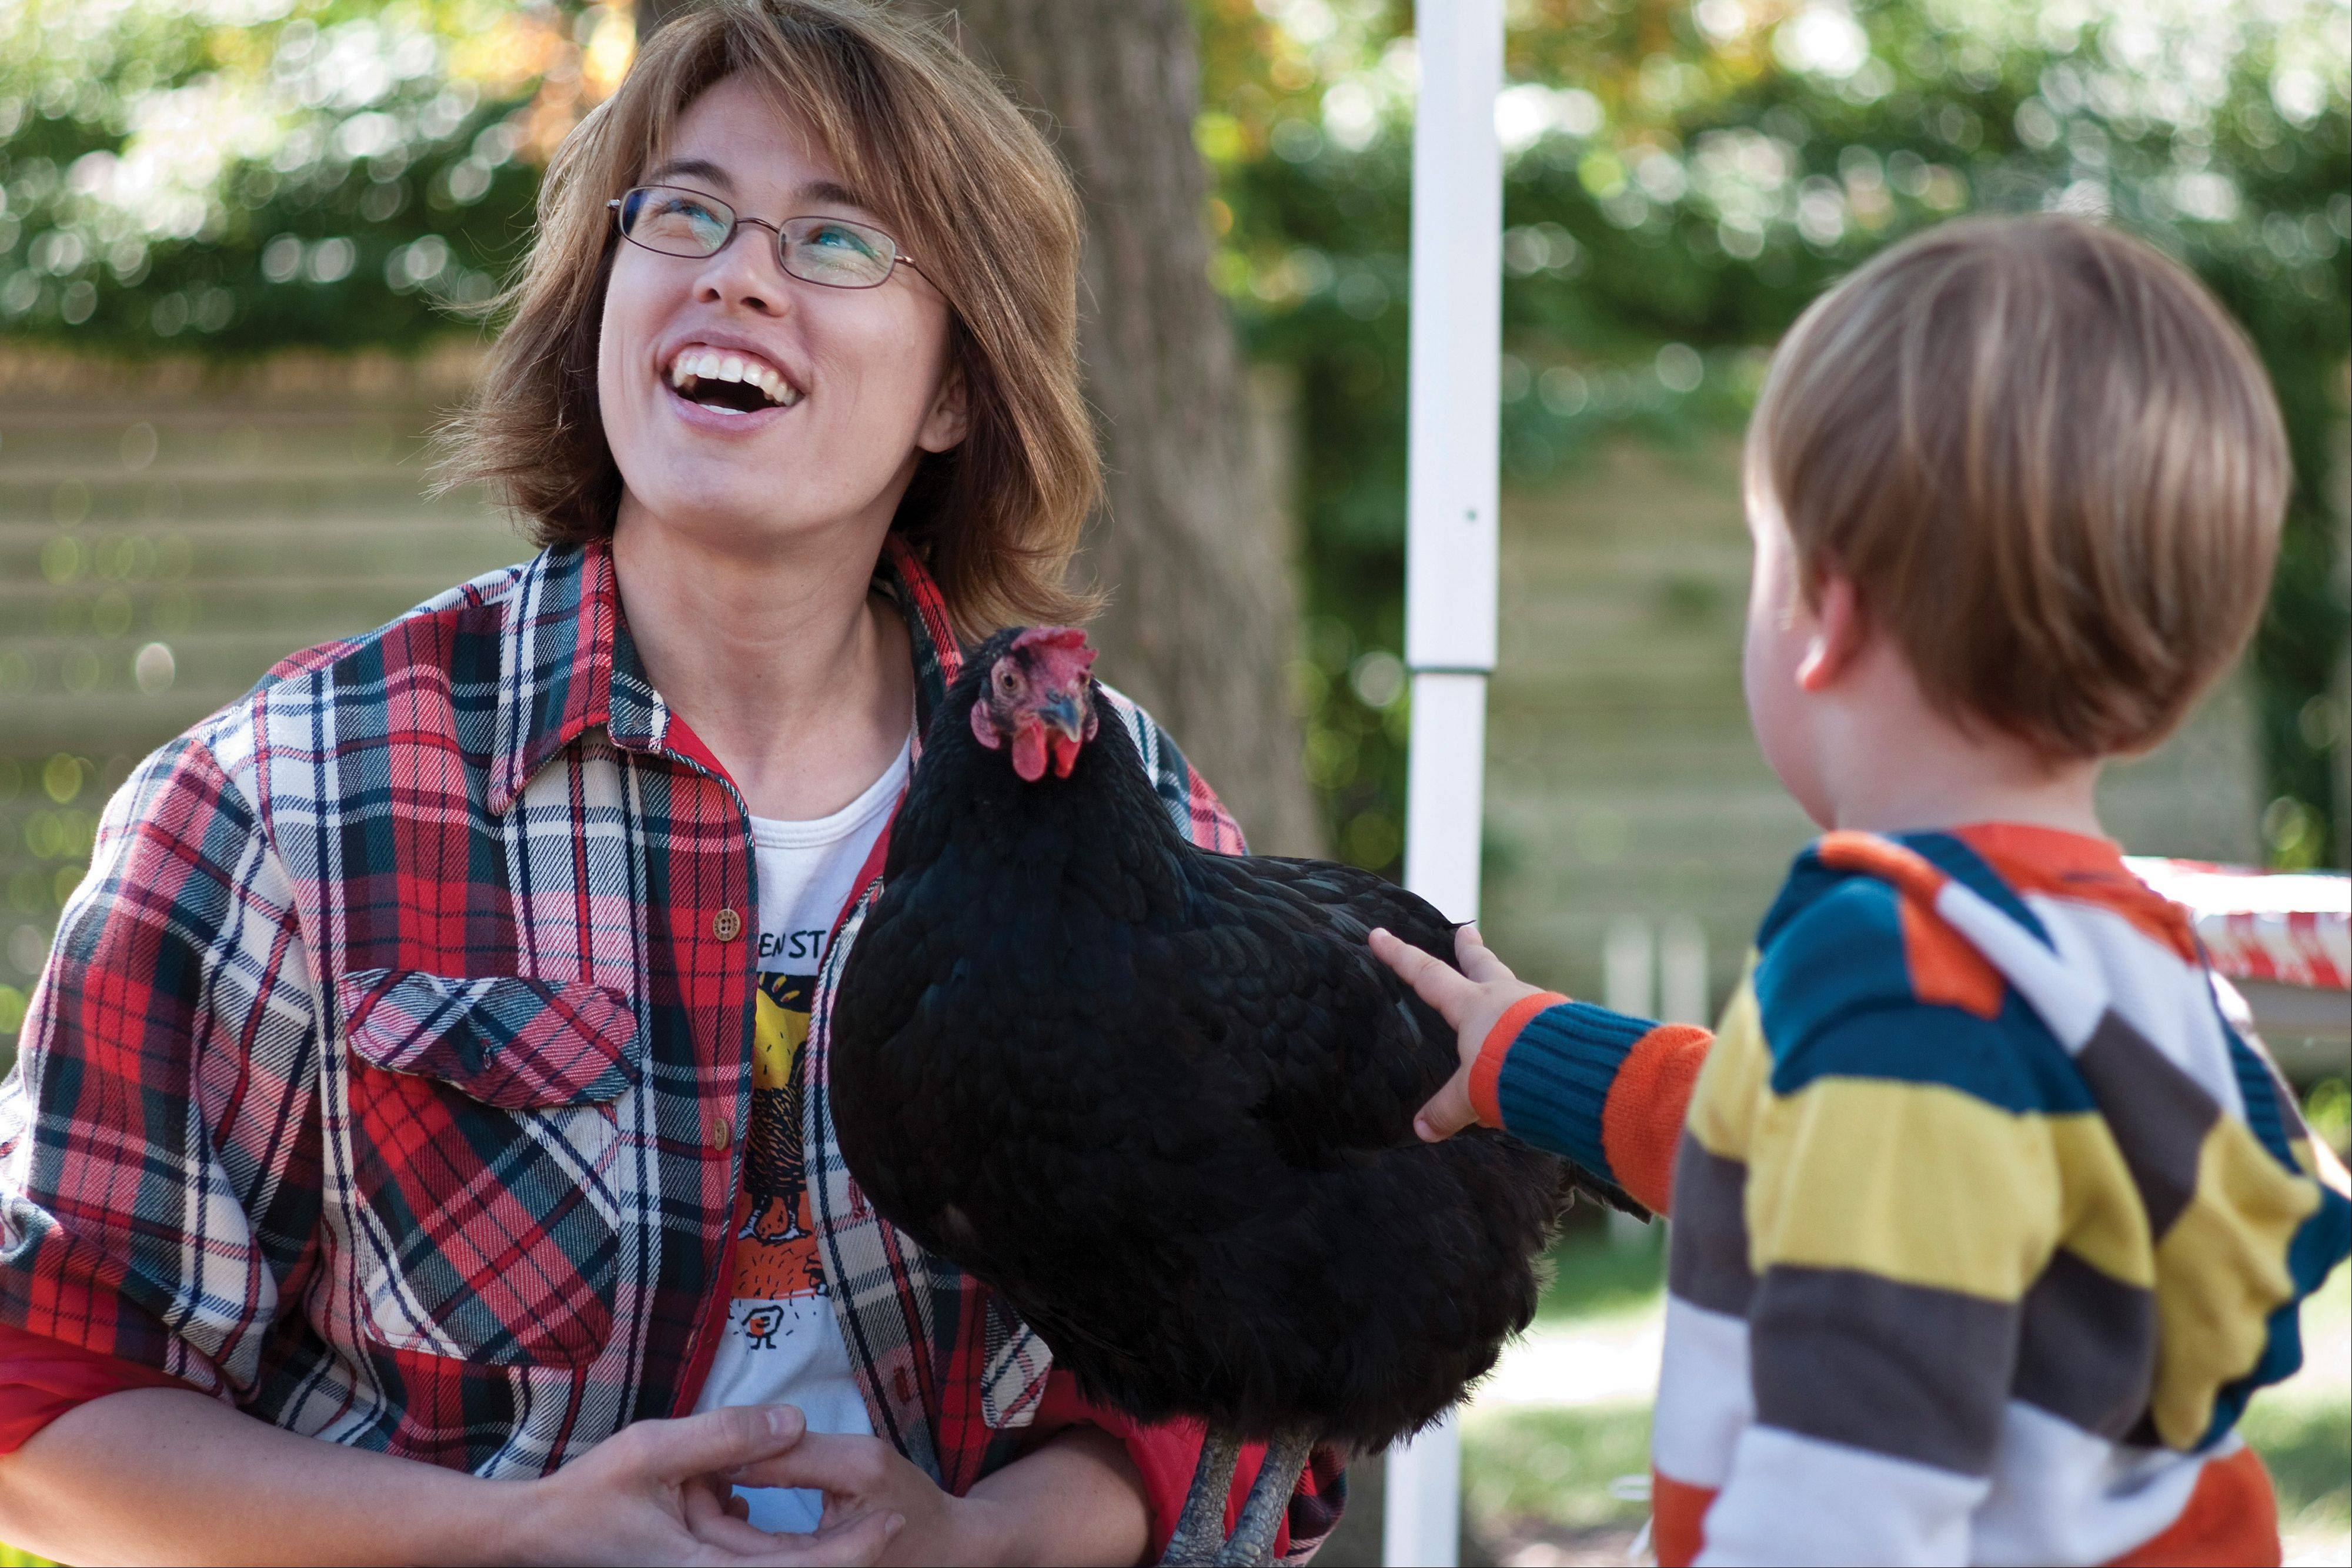 Children can learn all about the harvest at Garfield Park Conservatory's Harvest Days.